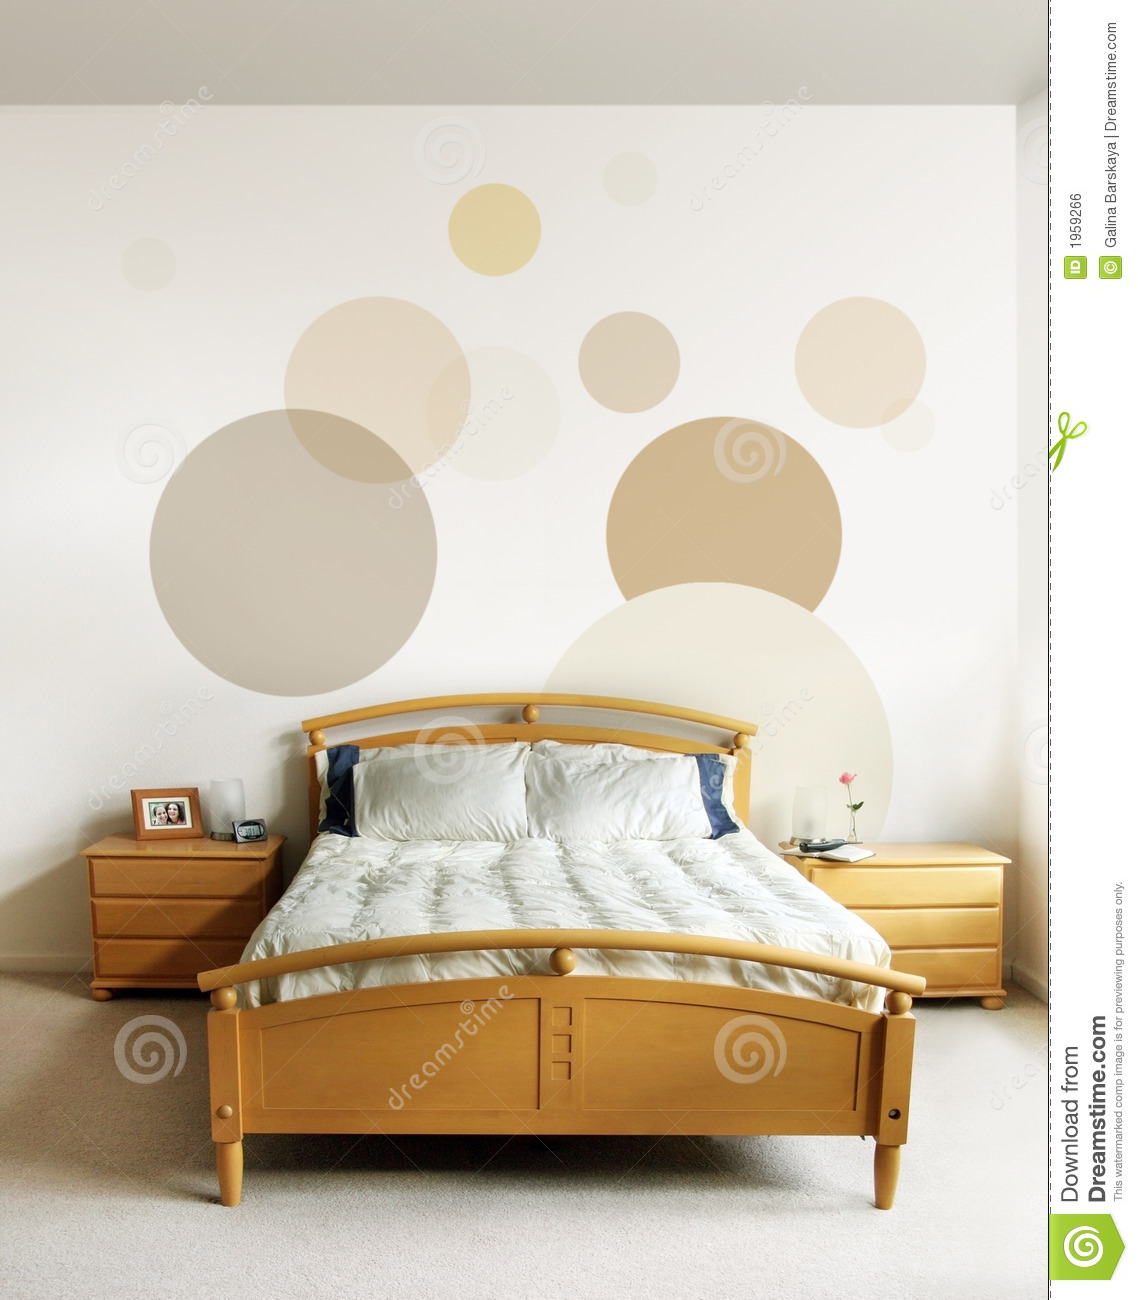 Disegno in camera da letto moderna fotografia stock How to design your bedroom wall